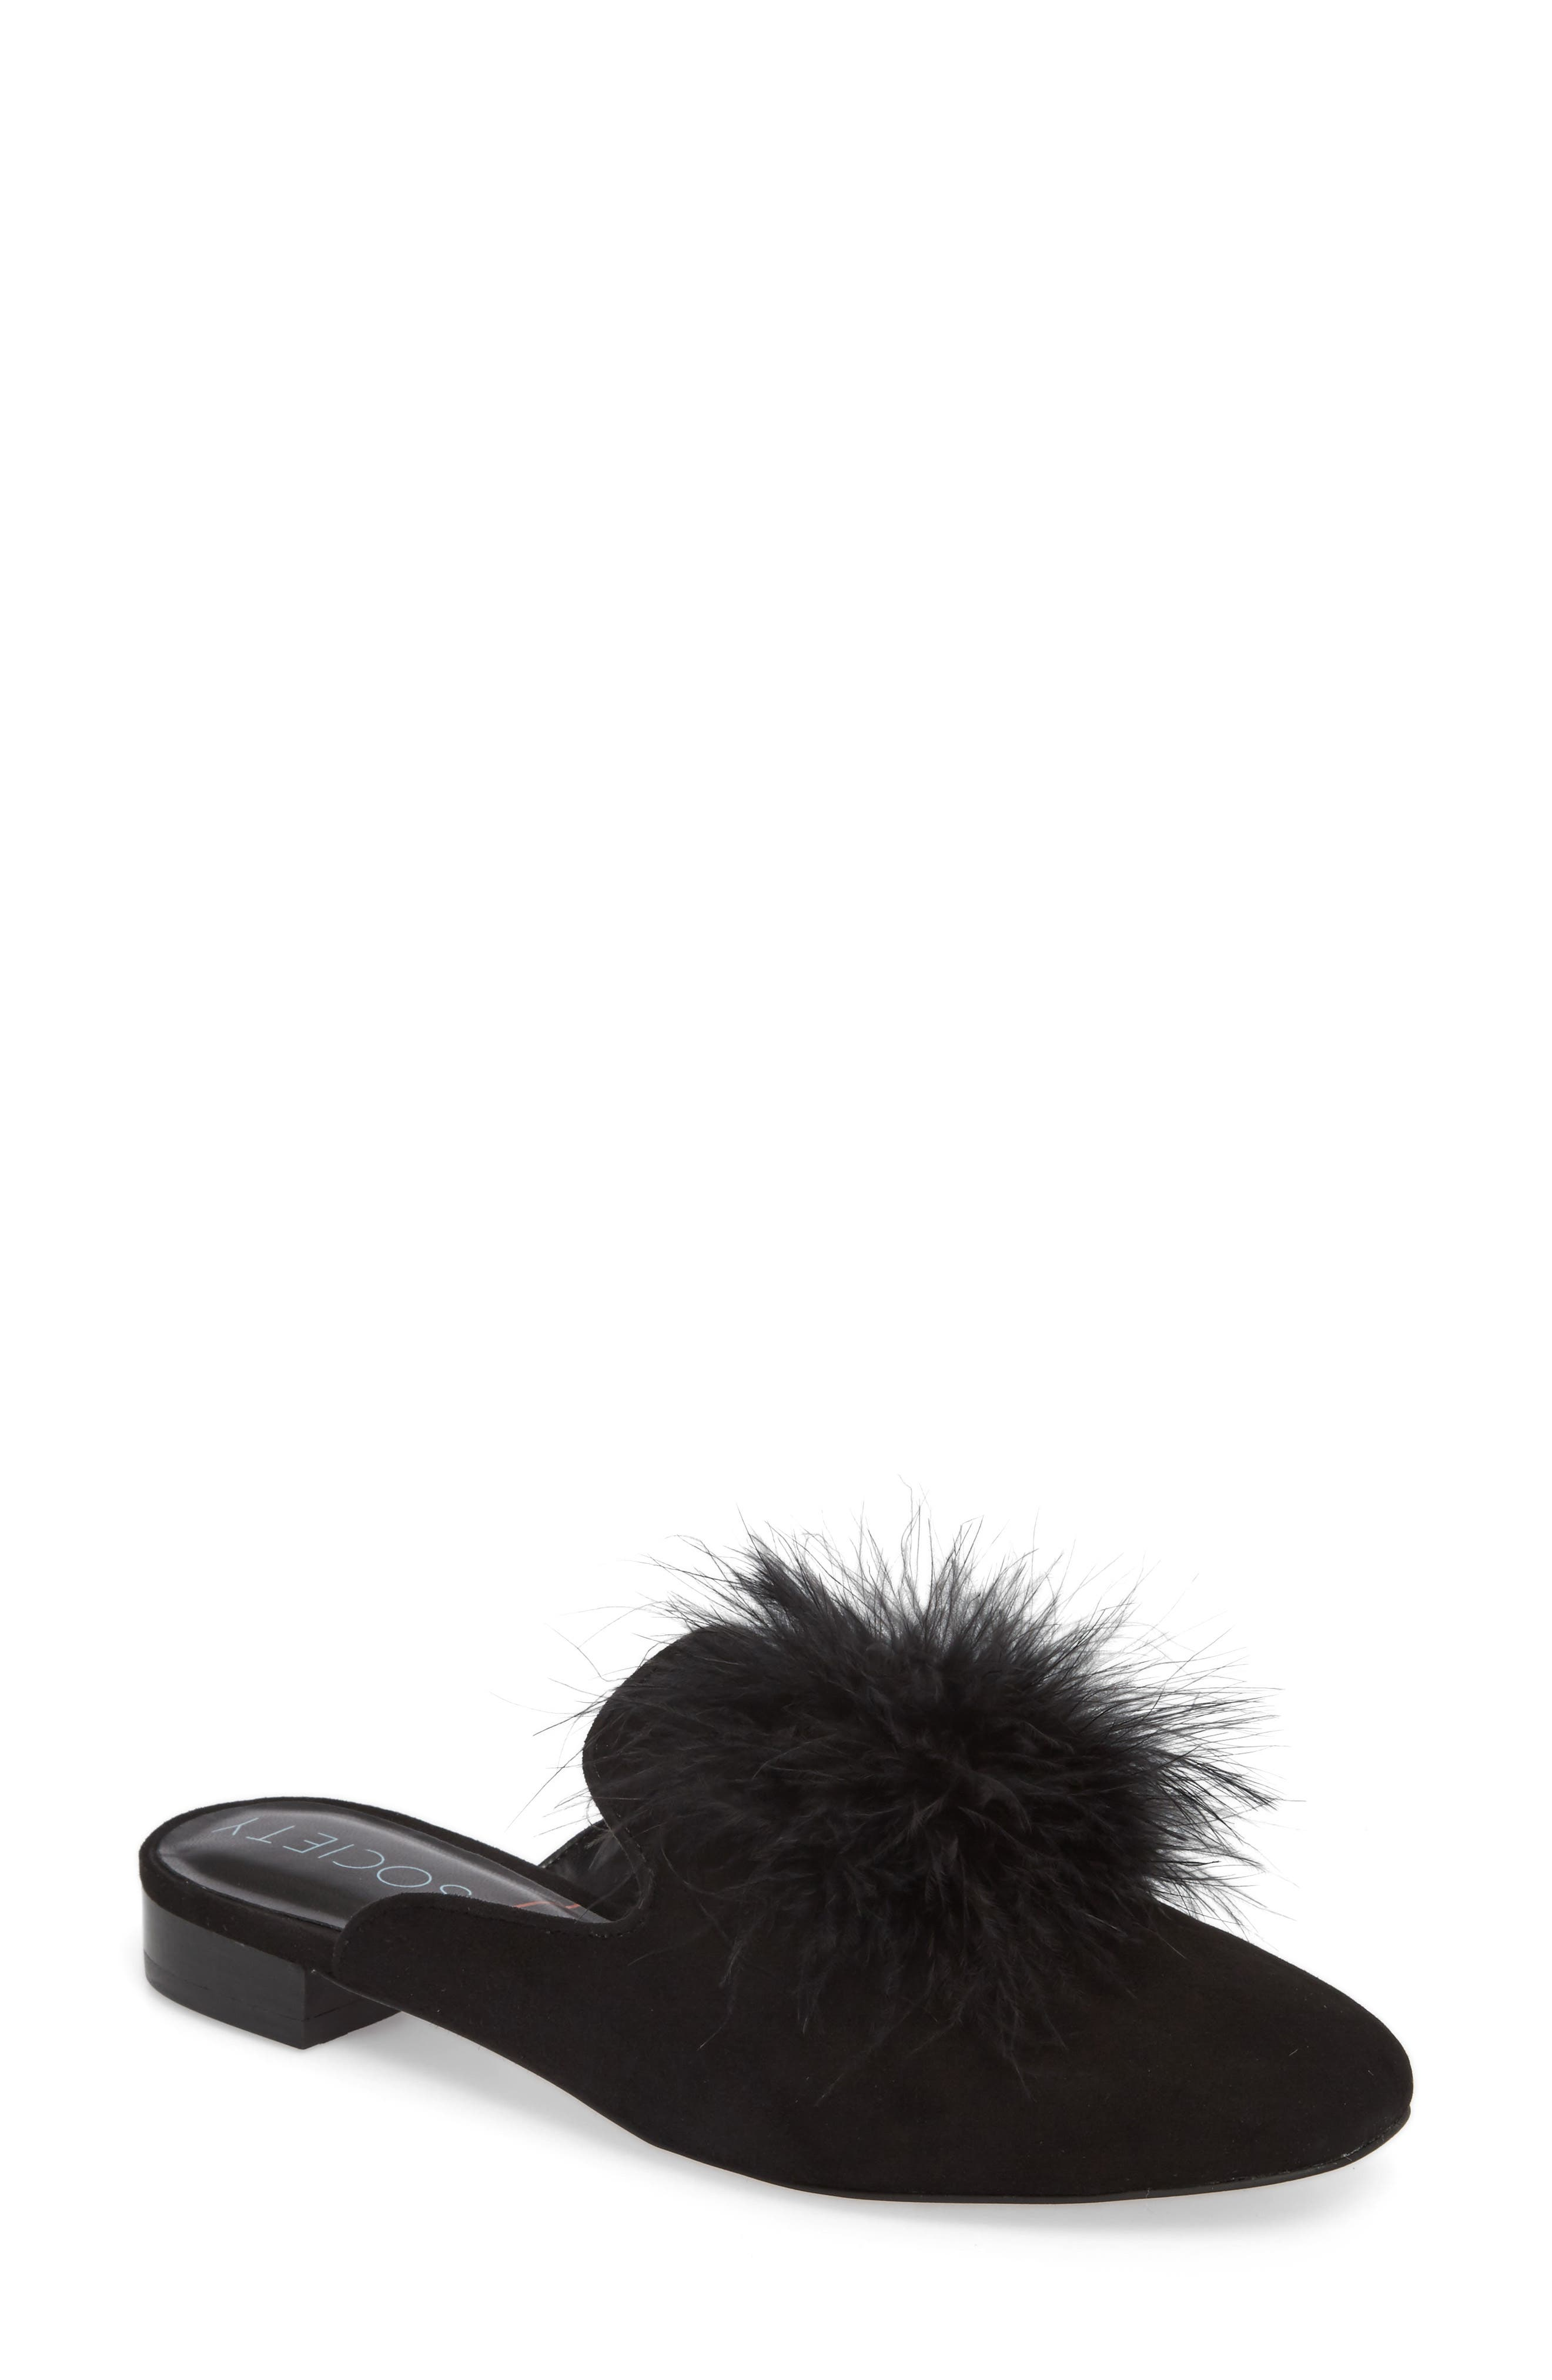 Cleona Feather Pompom Mule,                         Main,                         color, 001